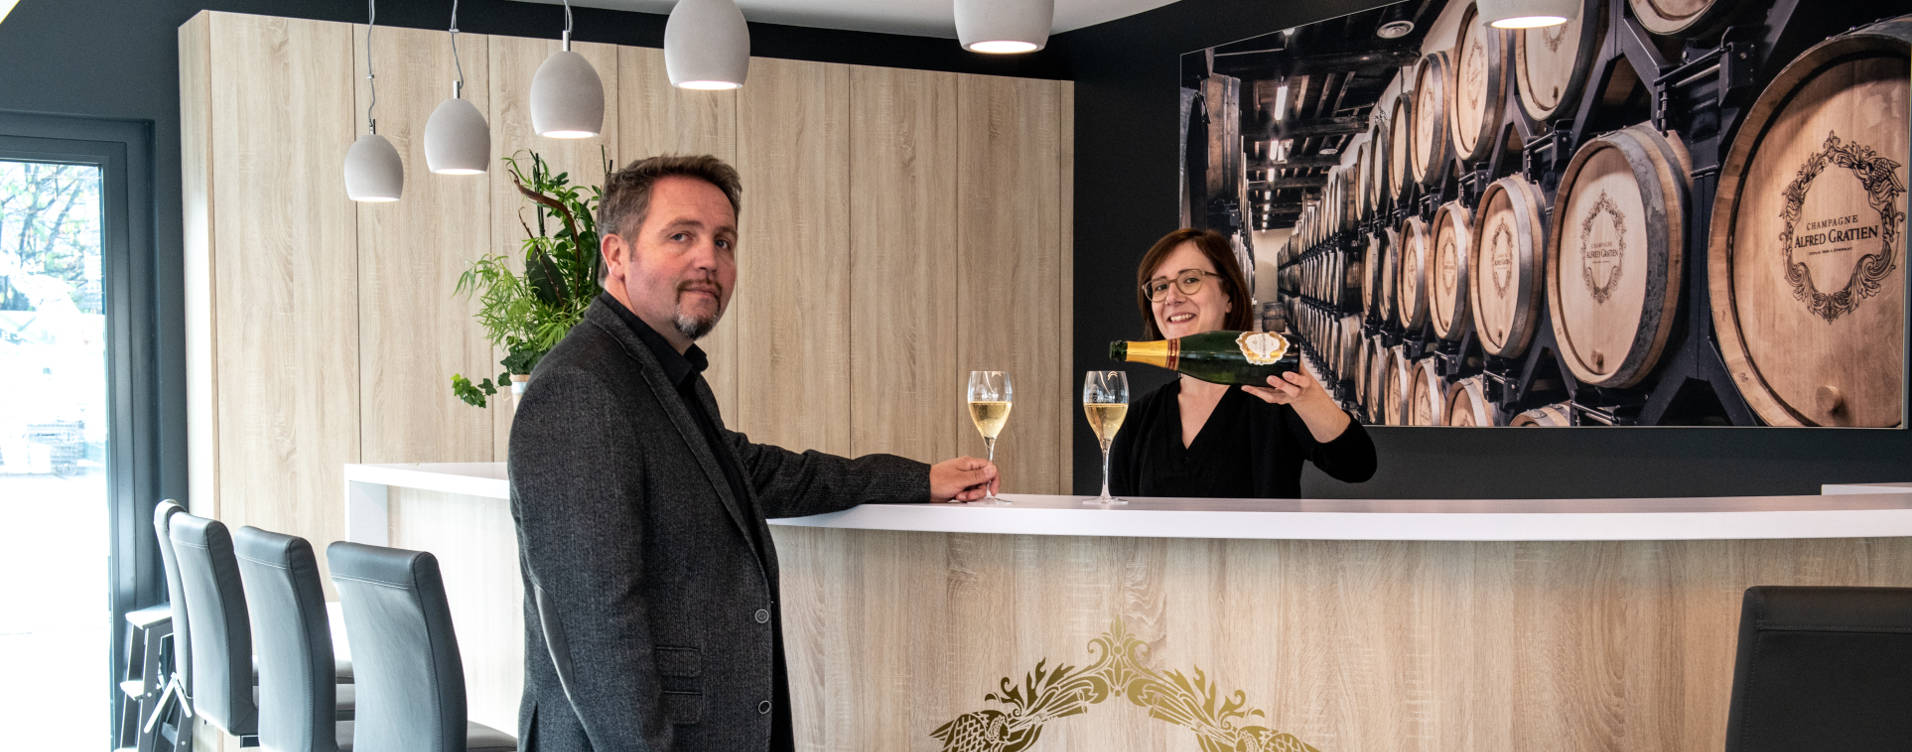 The 'Hand-Made' champagne Tour and Tasting